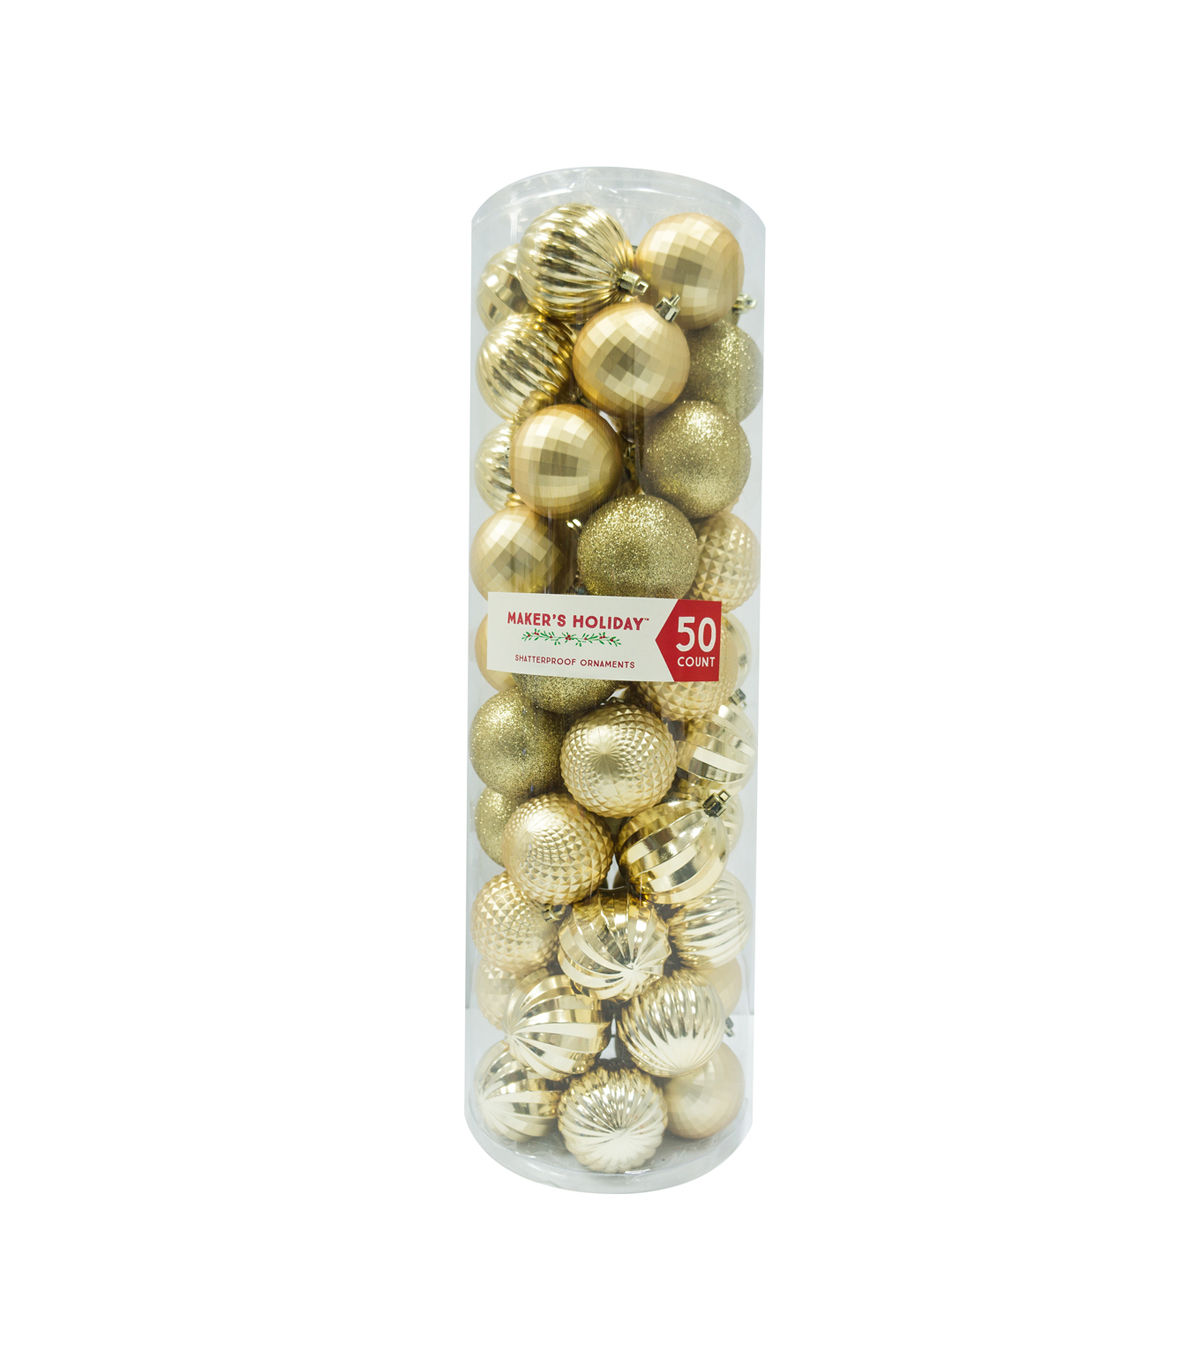 Maker's Holiday 50ct Shatterproof Ornaments-Gold